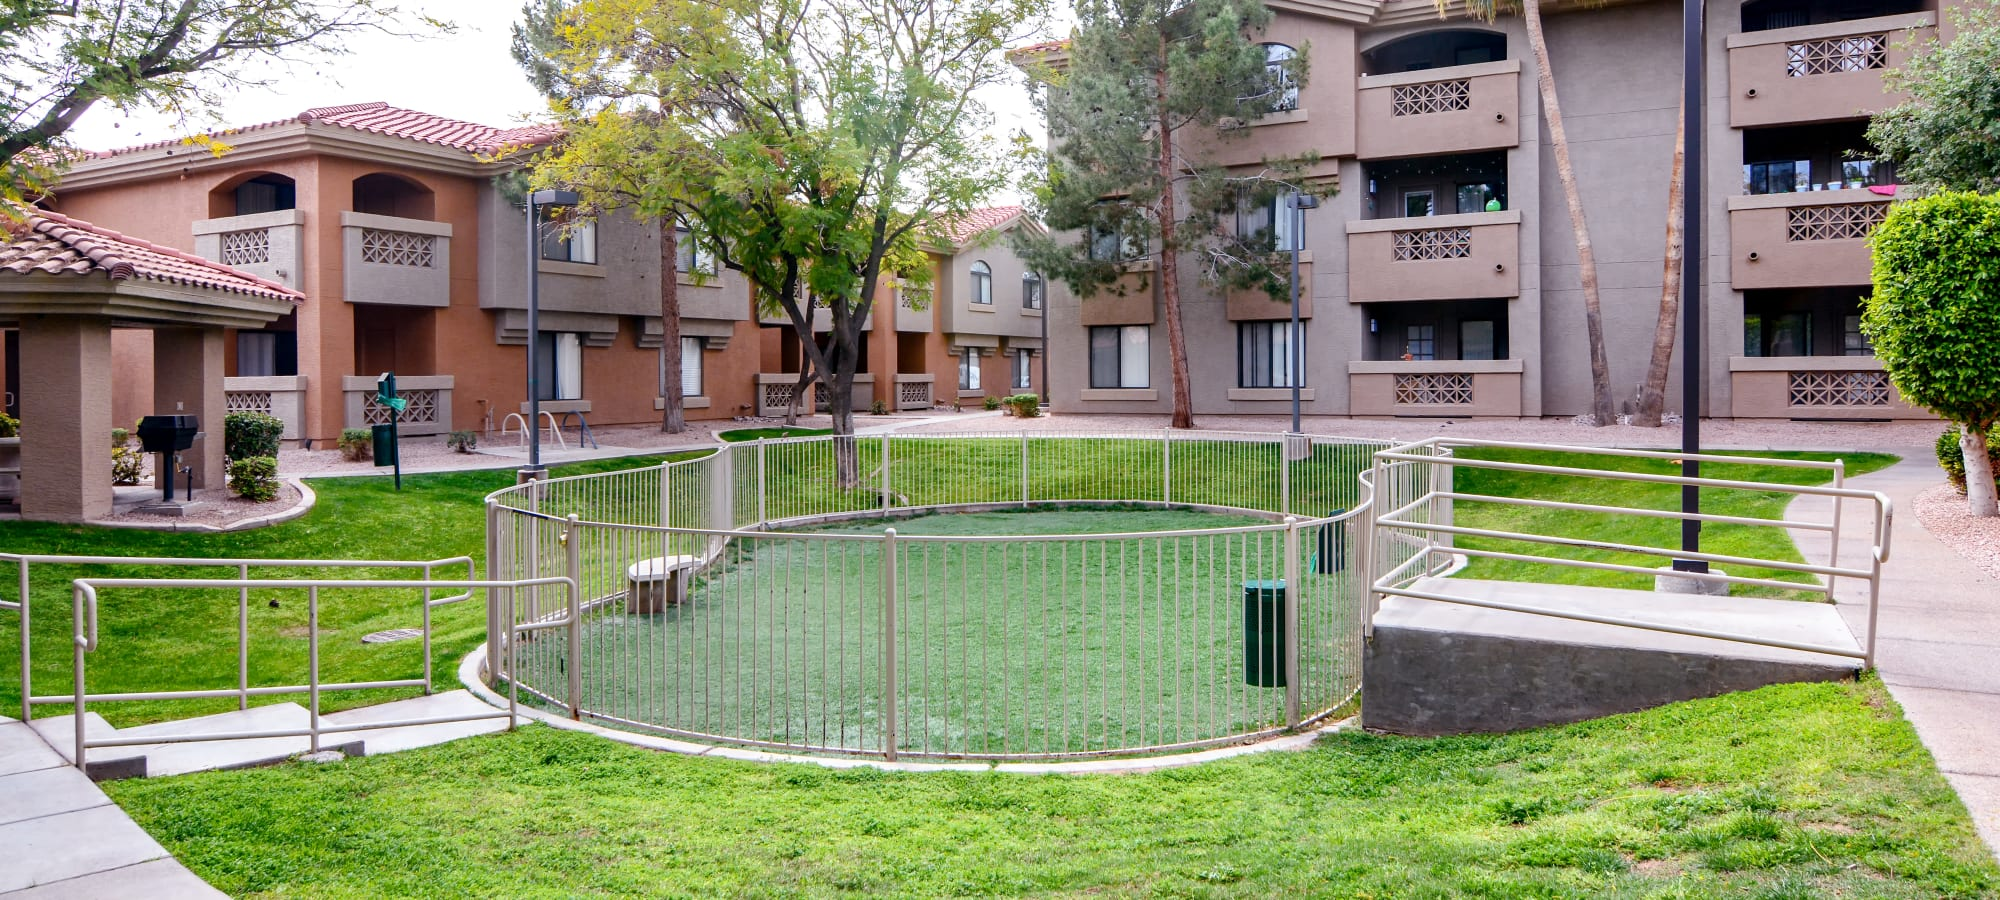 Dog park at The Palms on Scottsdale in Tempe, Arizona